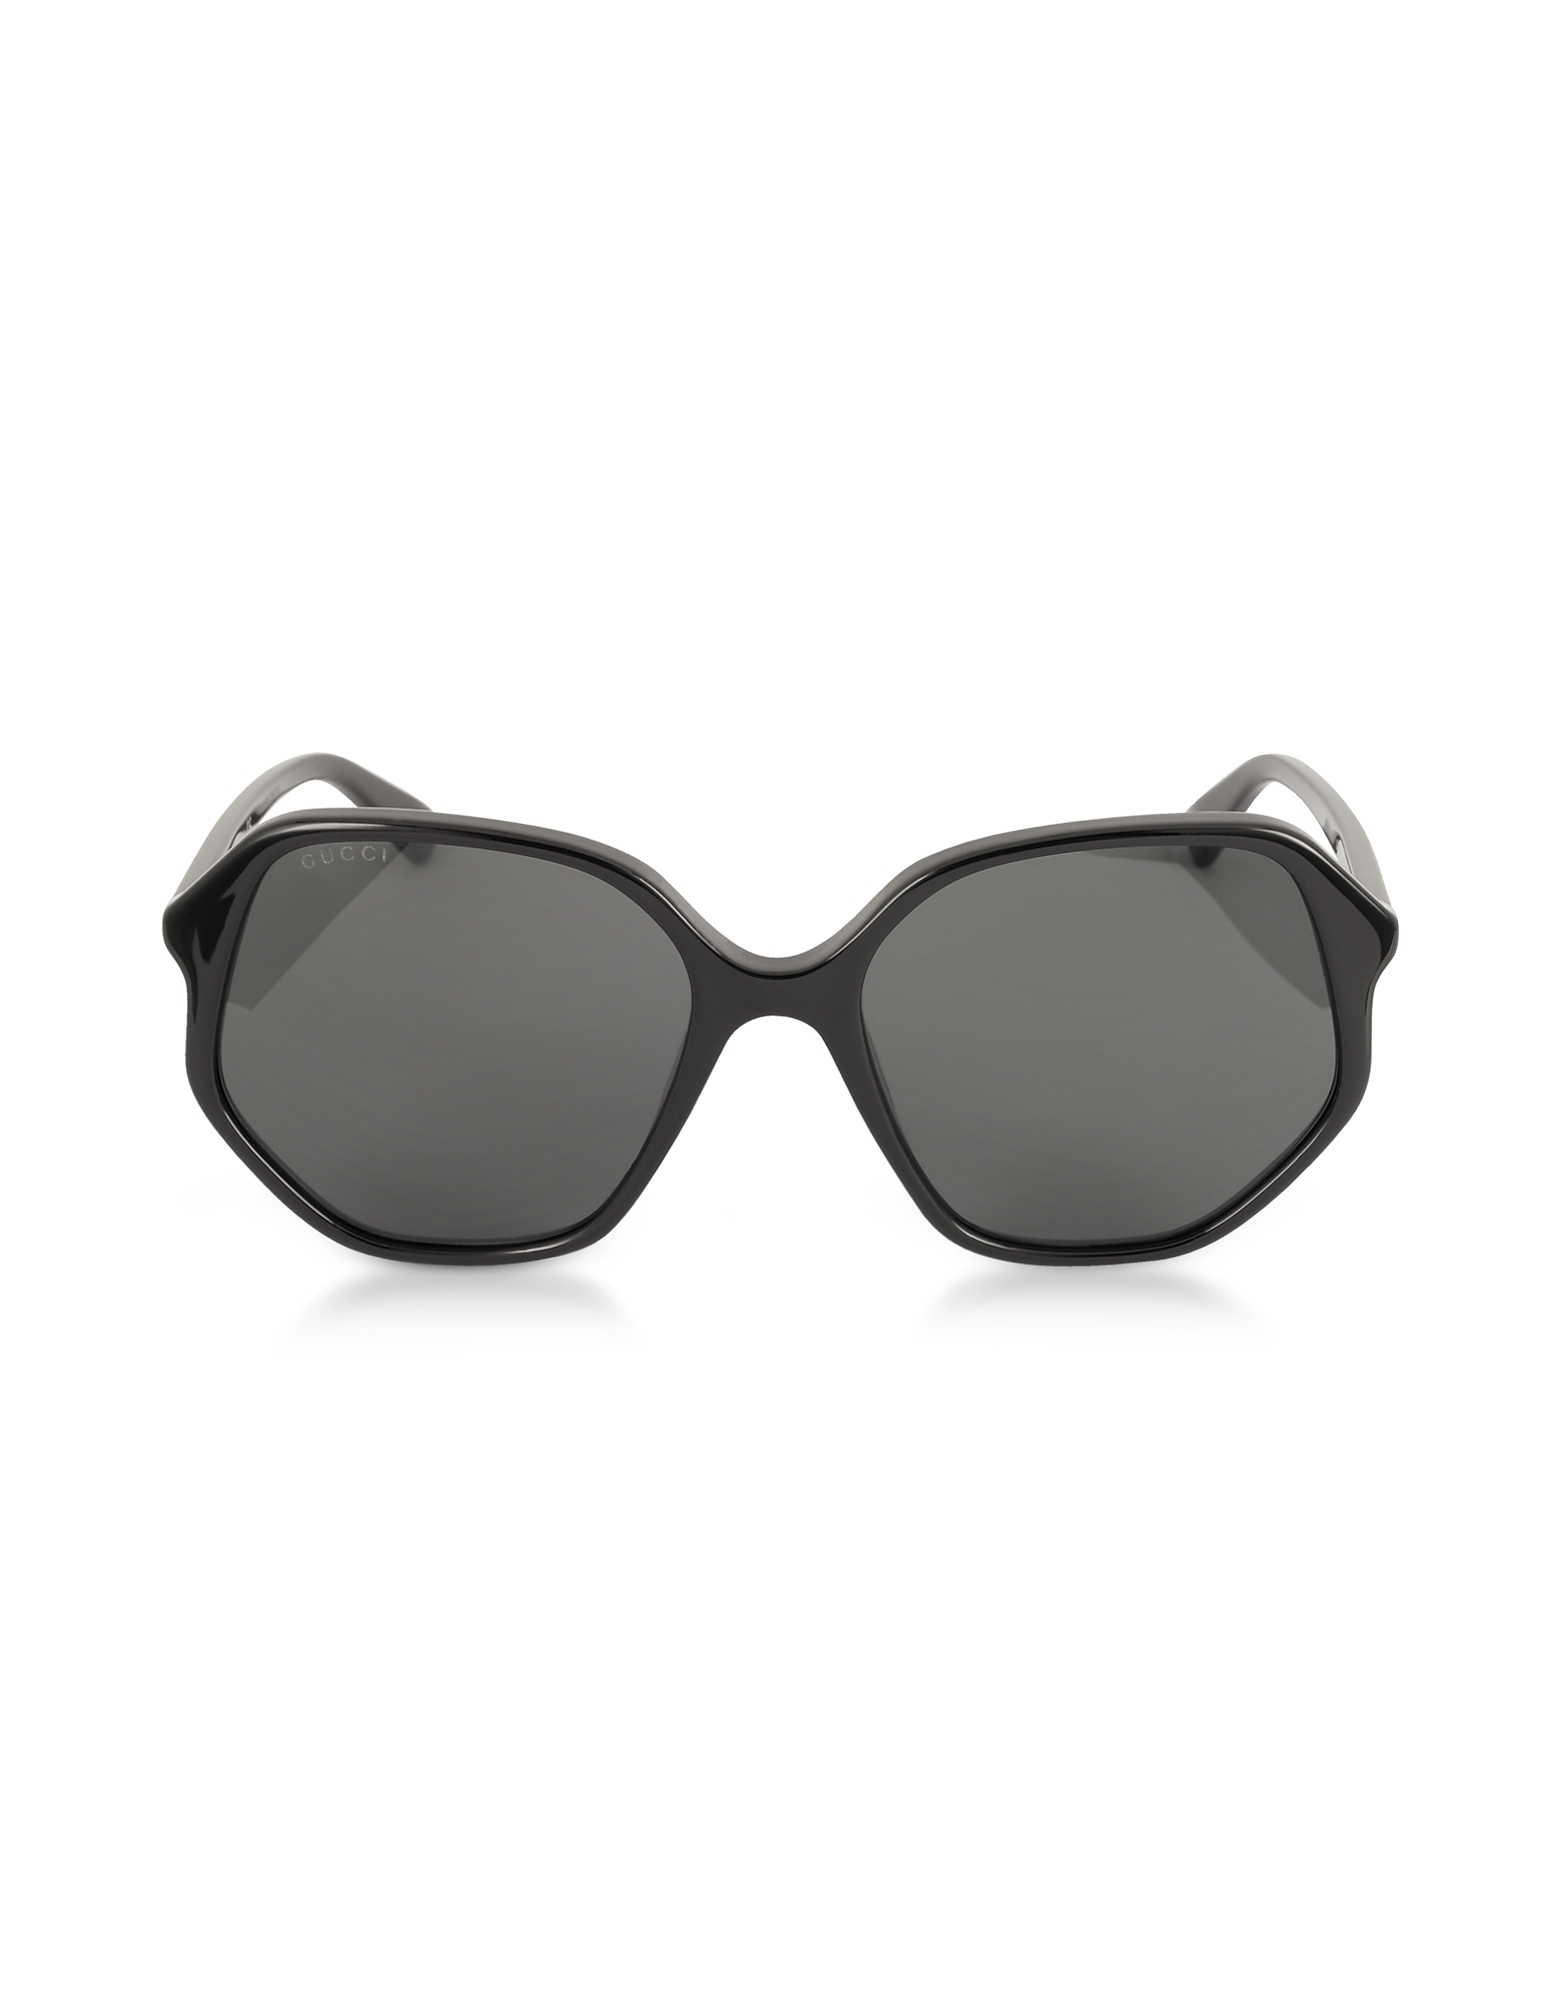 Gucci Designer Sunglasses, GG0258S Geometric-frame Black Acetate Sunglasses